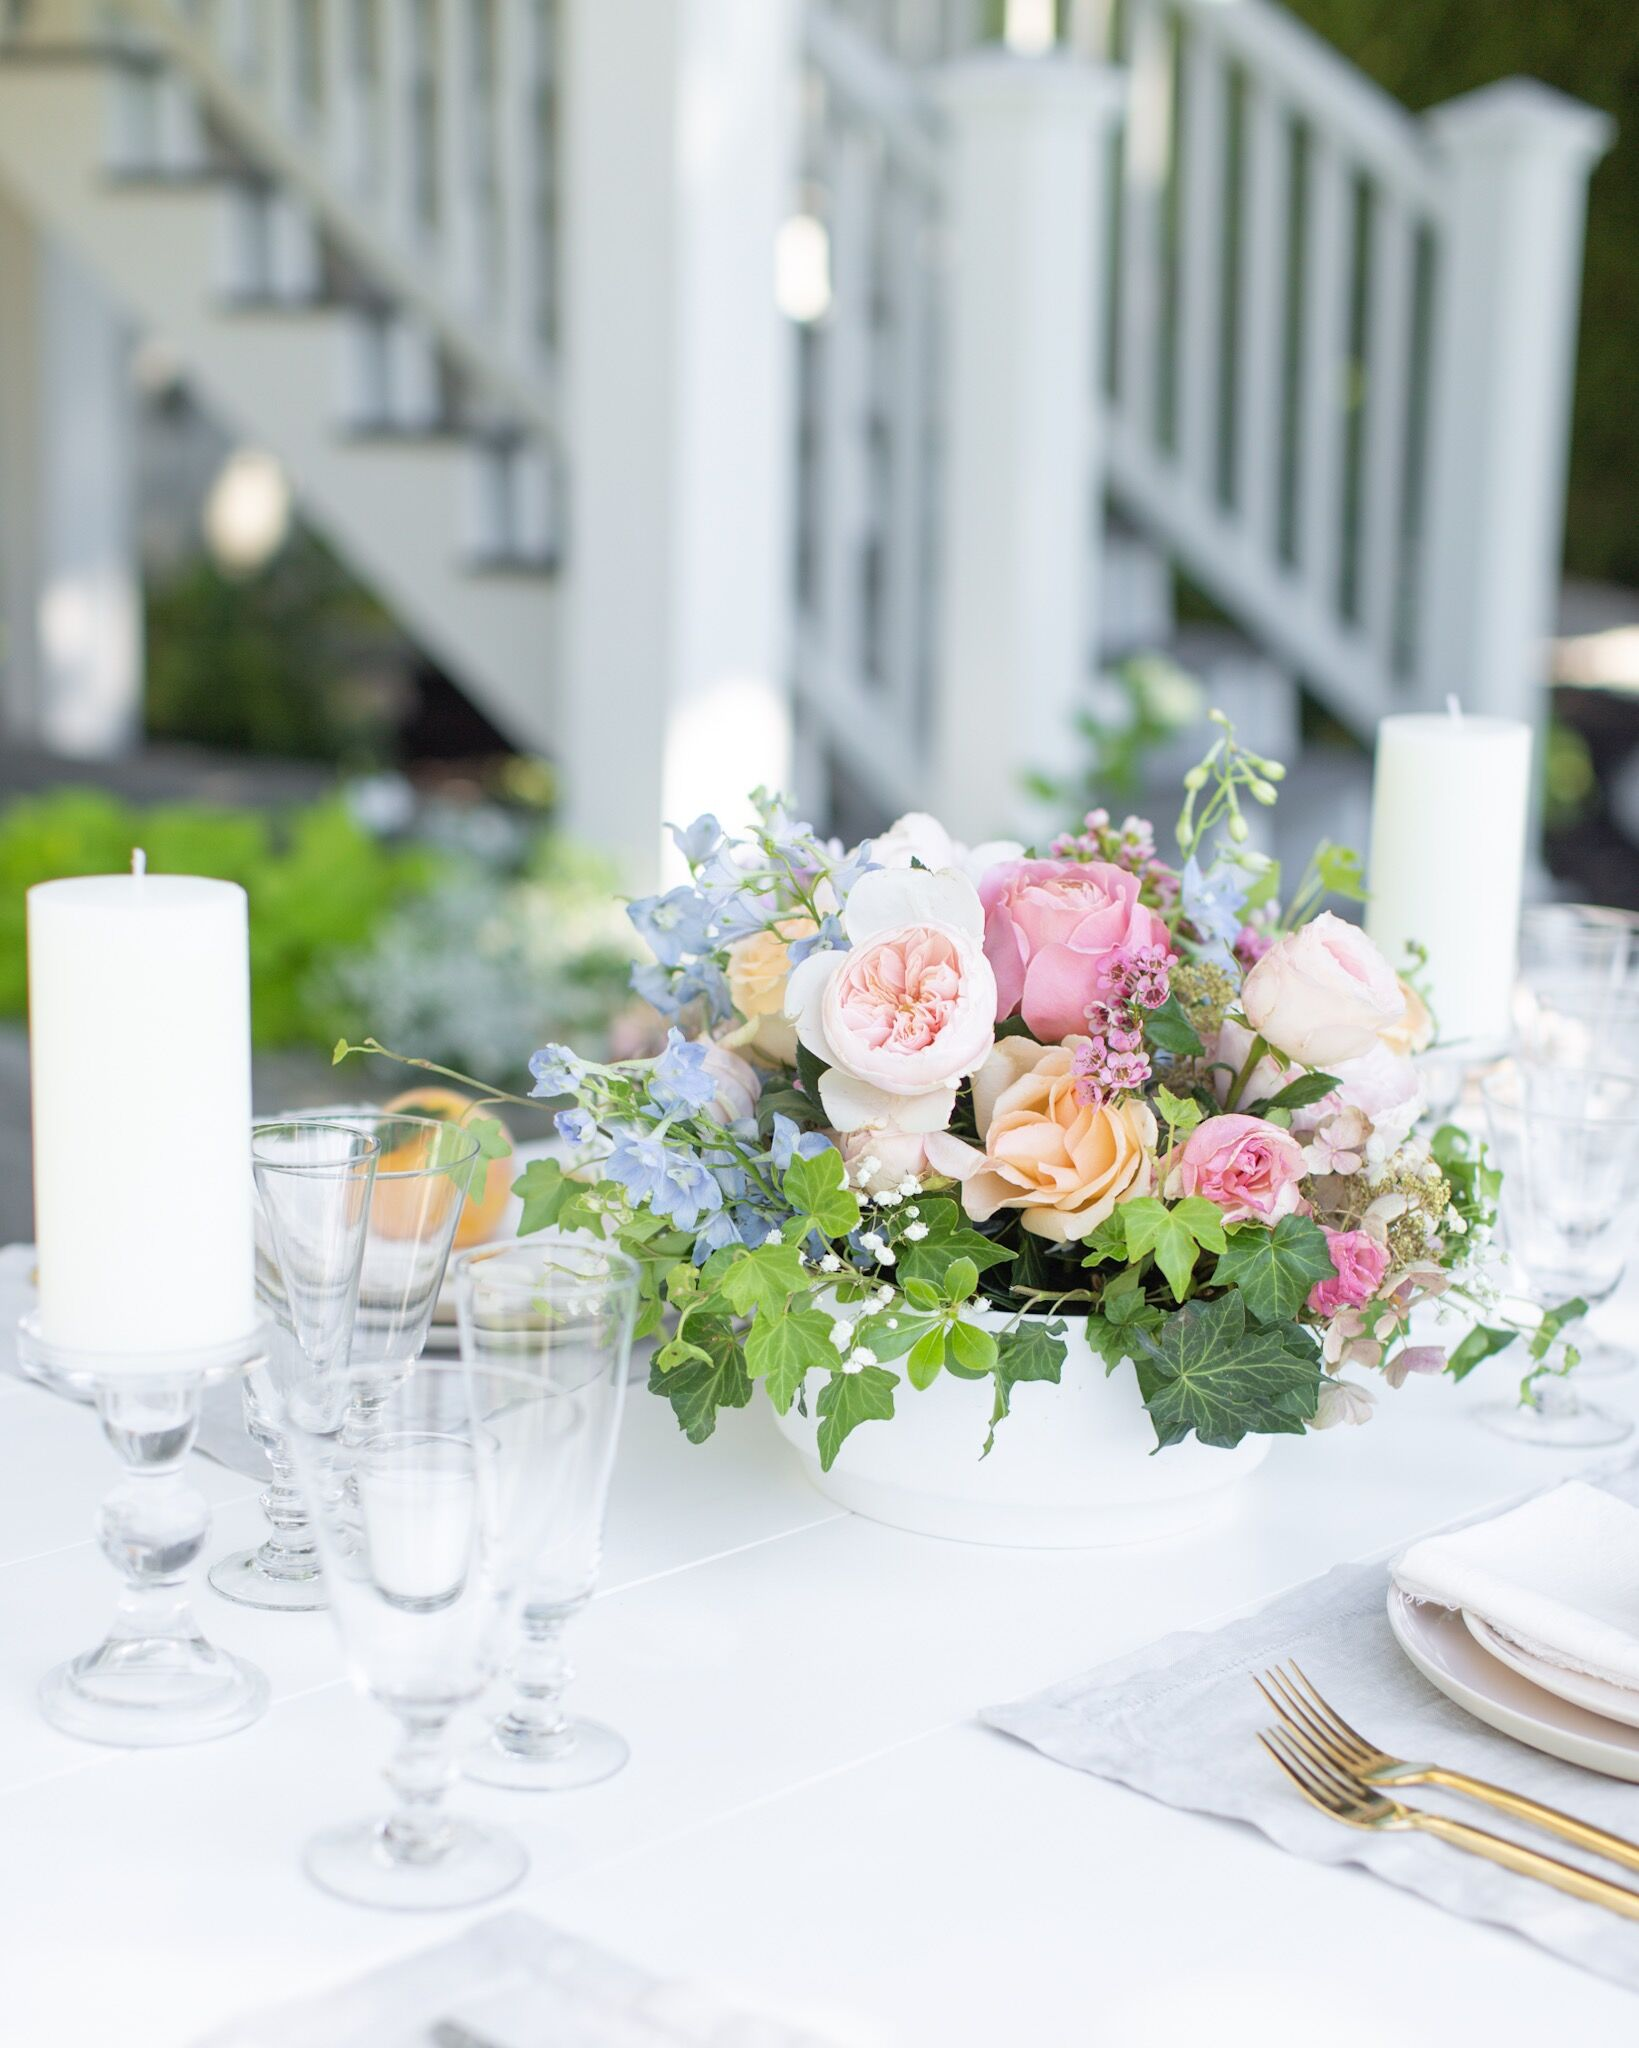 How to throw the best garden party complete with a white picnic table, a wine-paired menu, fresh flowers and a hostess schedule